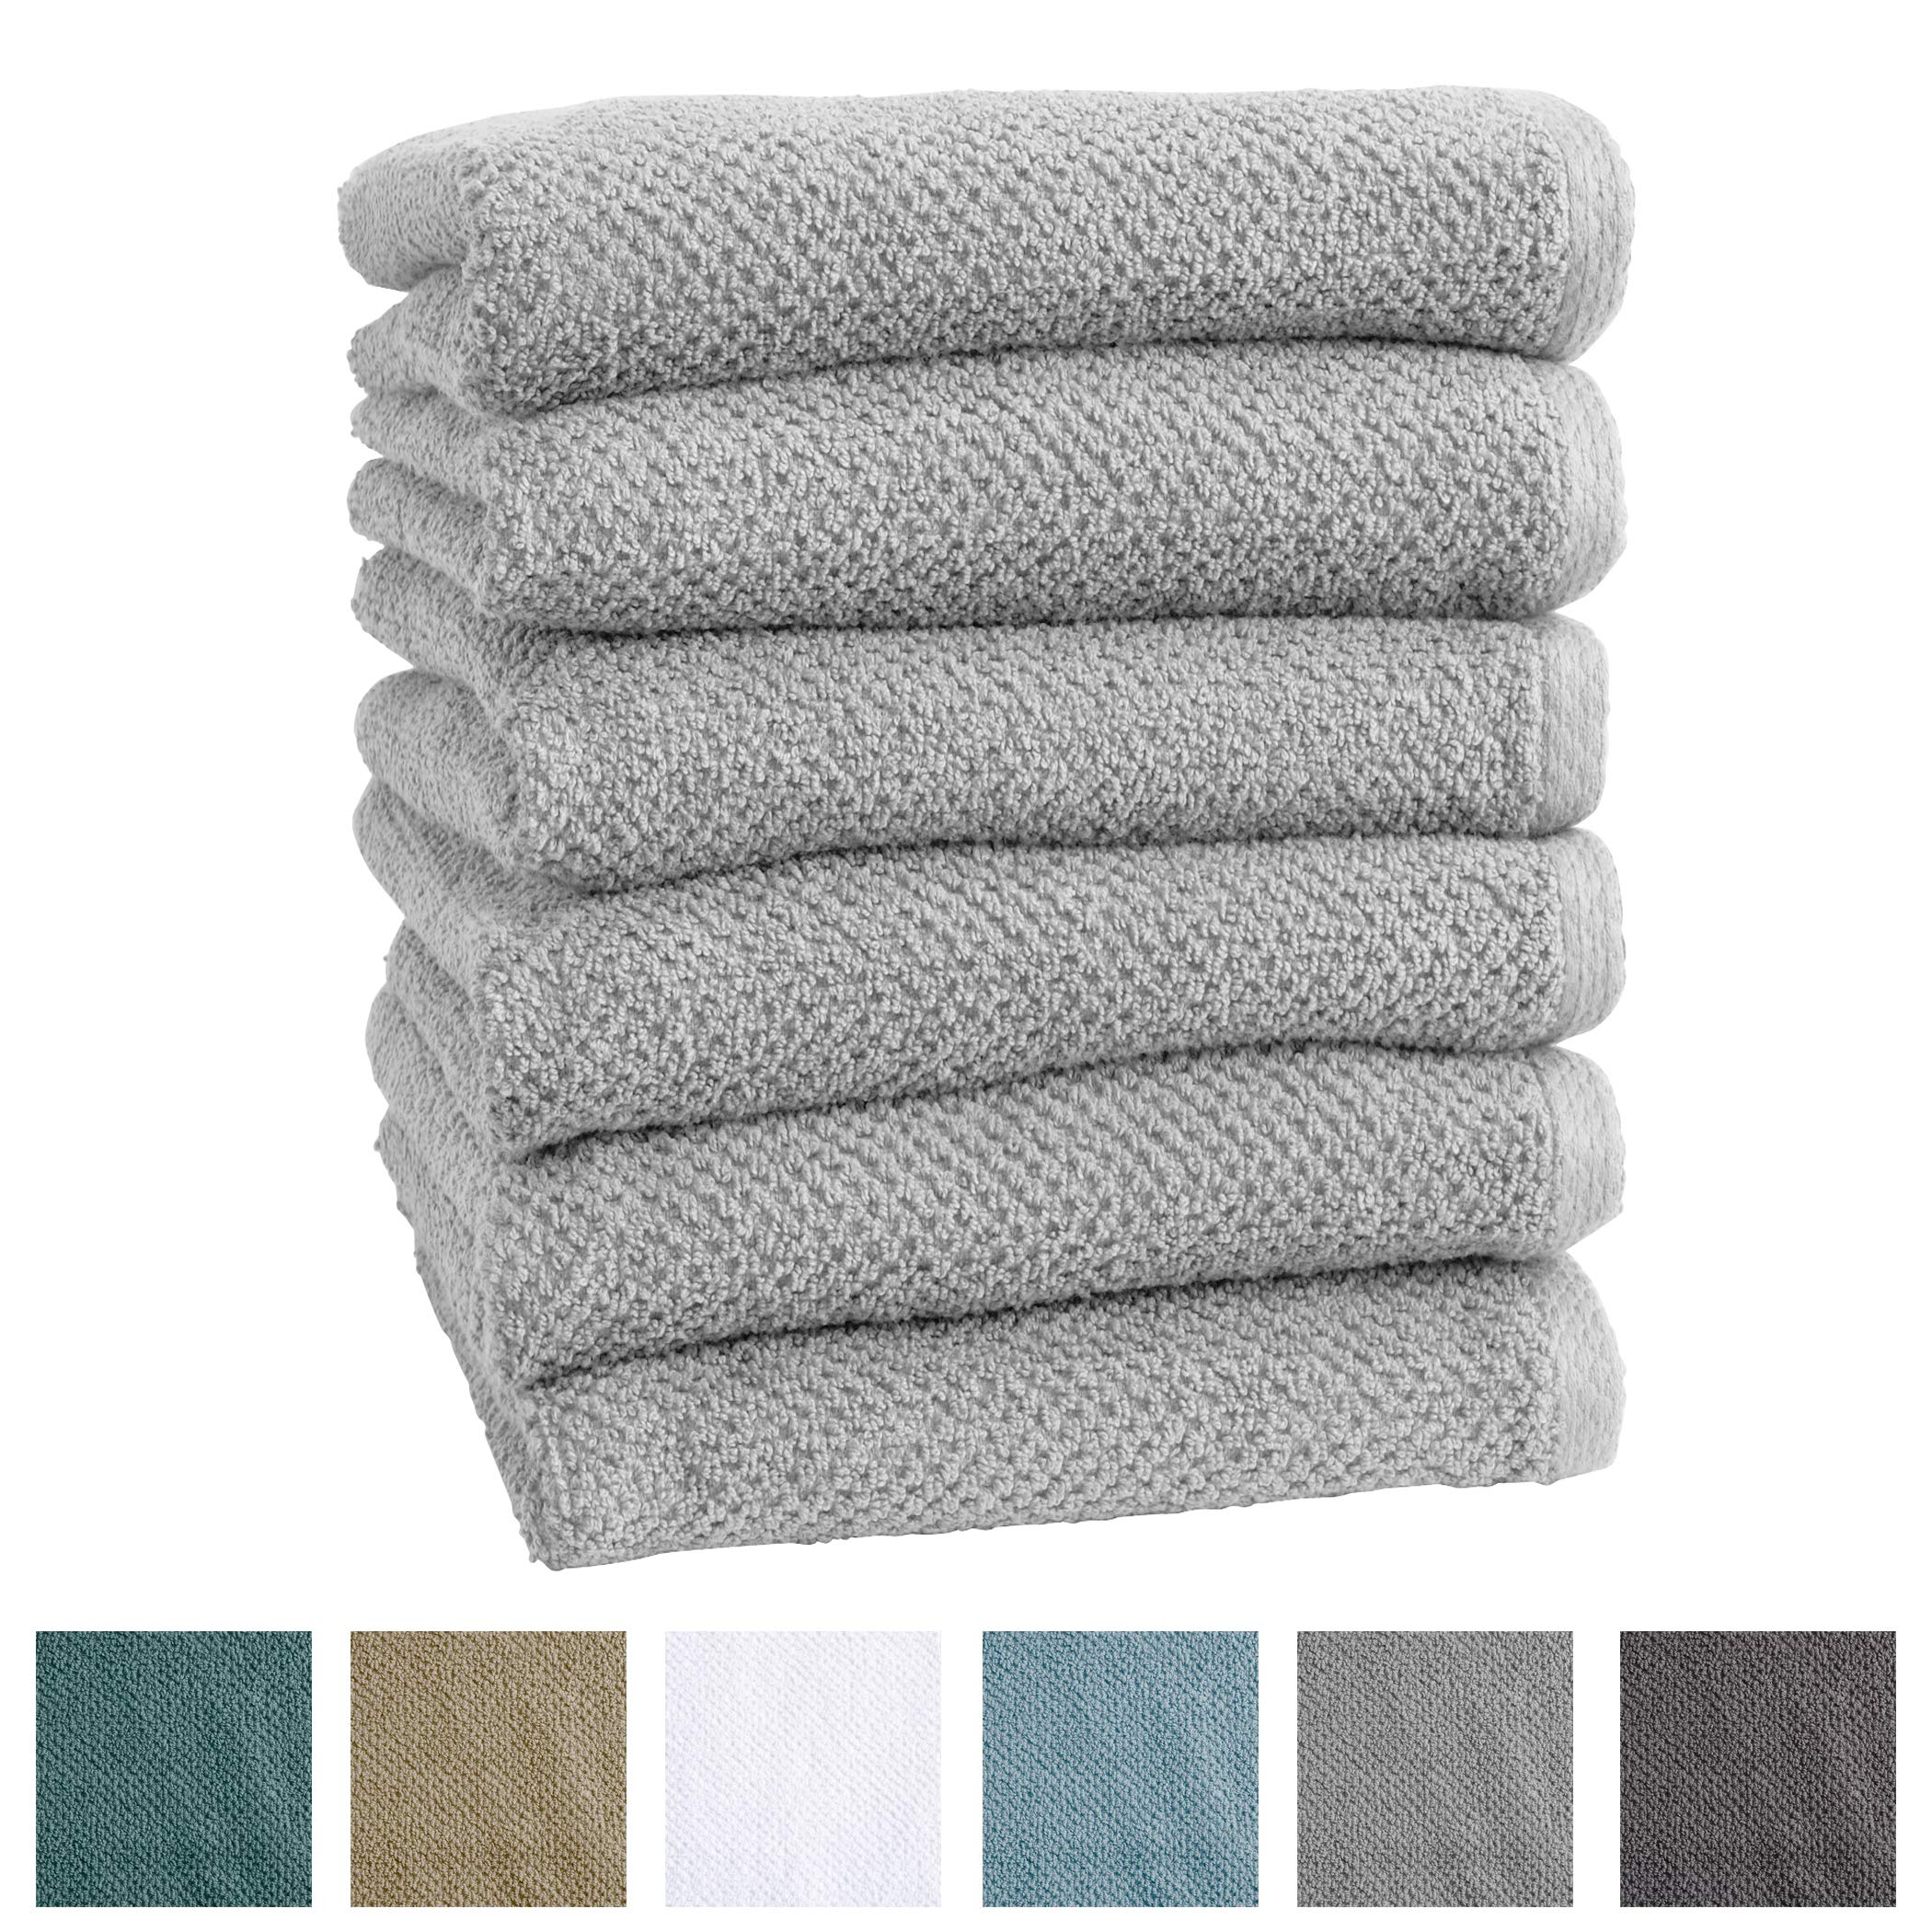 6-Pack 100% Cotton, Ultra-Absorbent Textured Hand Towels. 6 Elegant Solid Colors. Popcorn Weave. Acacia Collection. (Hand 6pk, Light Grey)